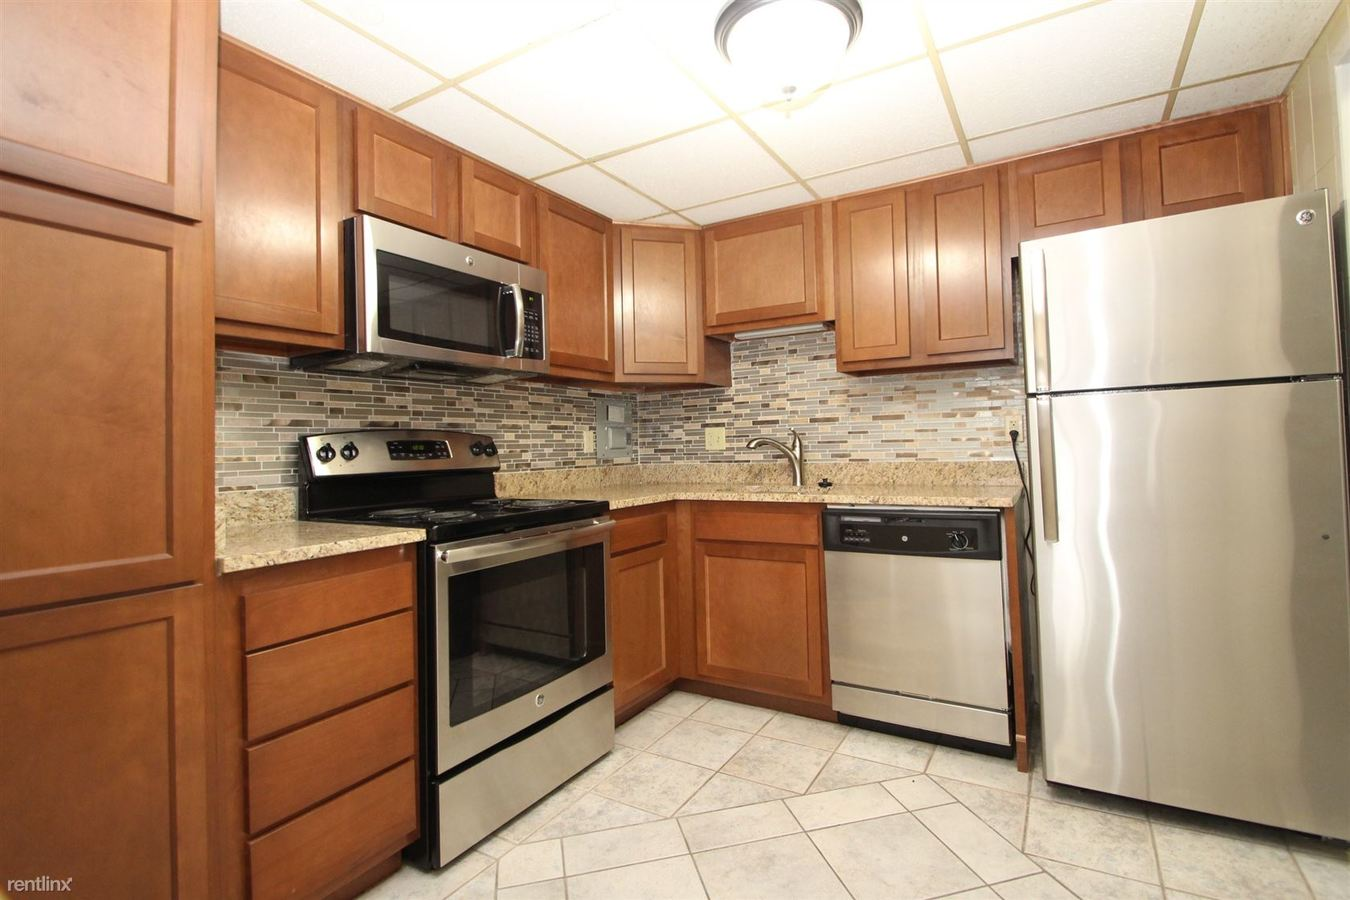 2 Bedrooms 2 Bathrooms Apartment for rent at Queensbury in Avalon, PA